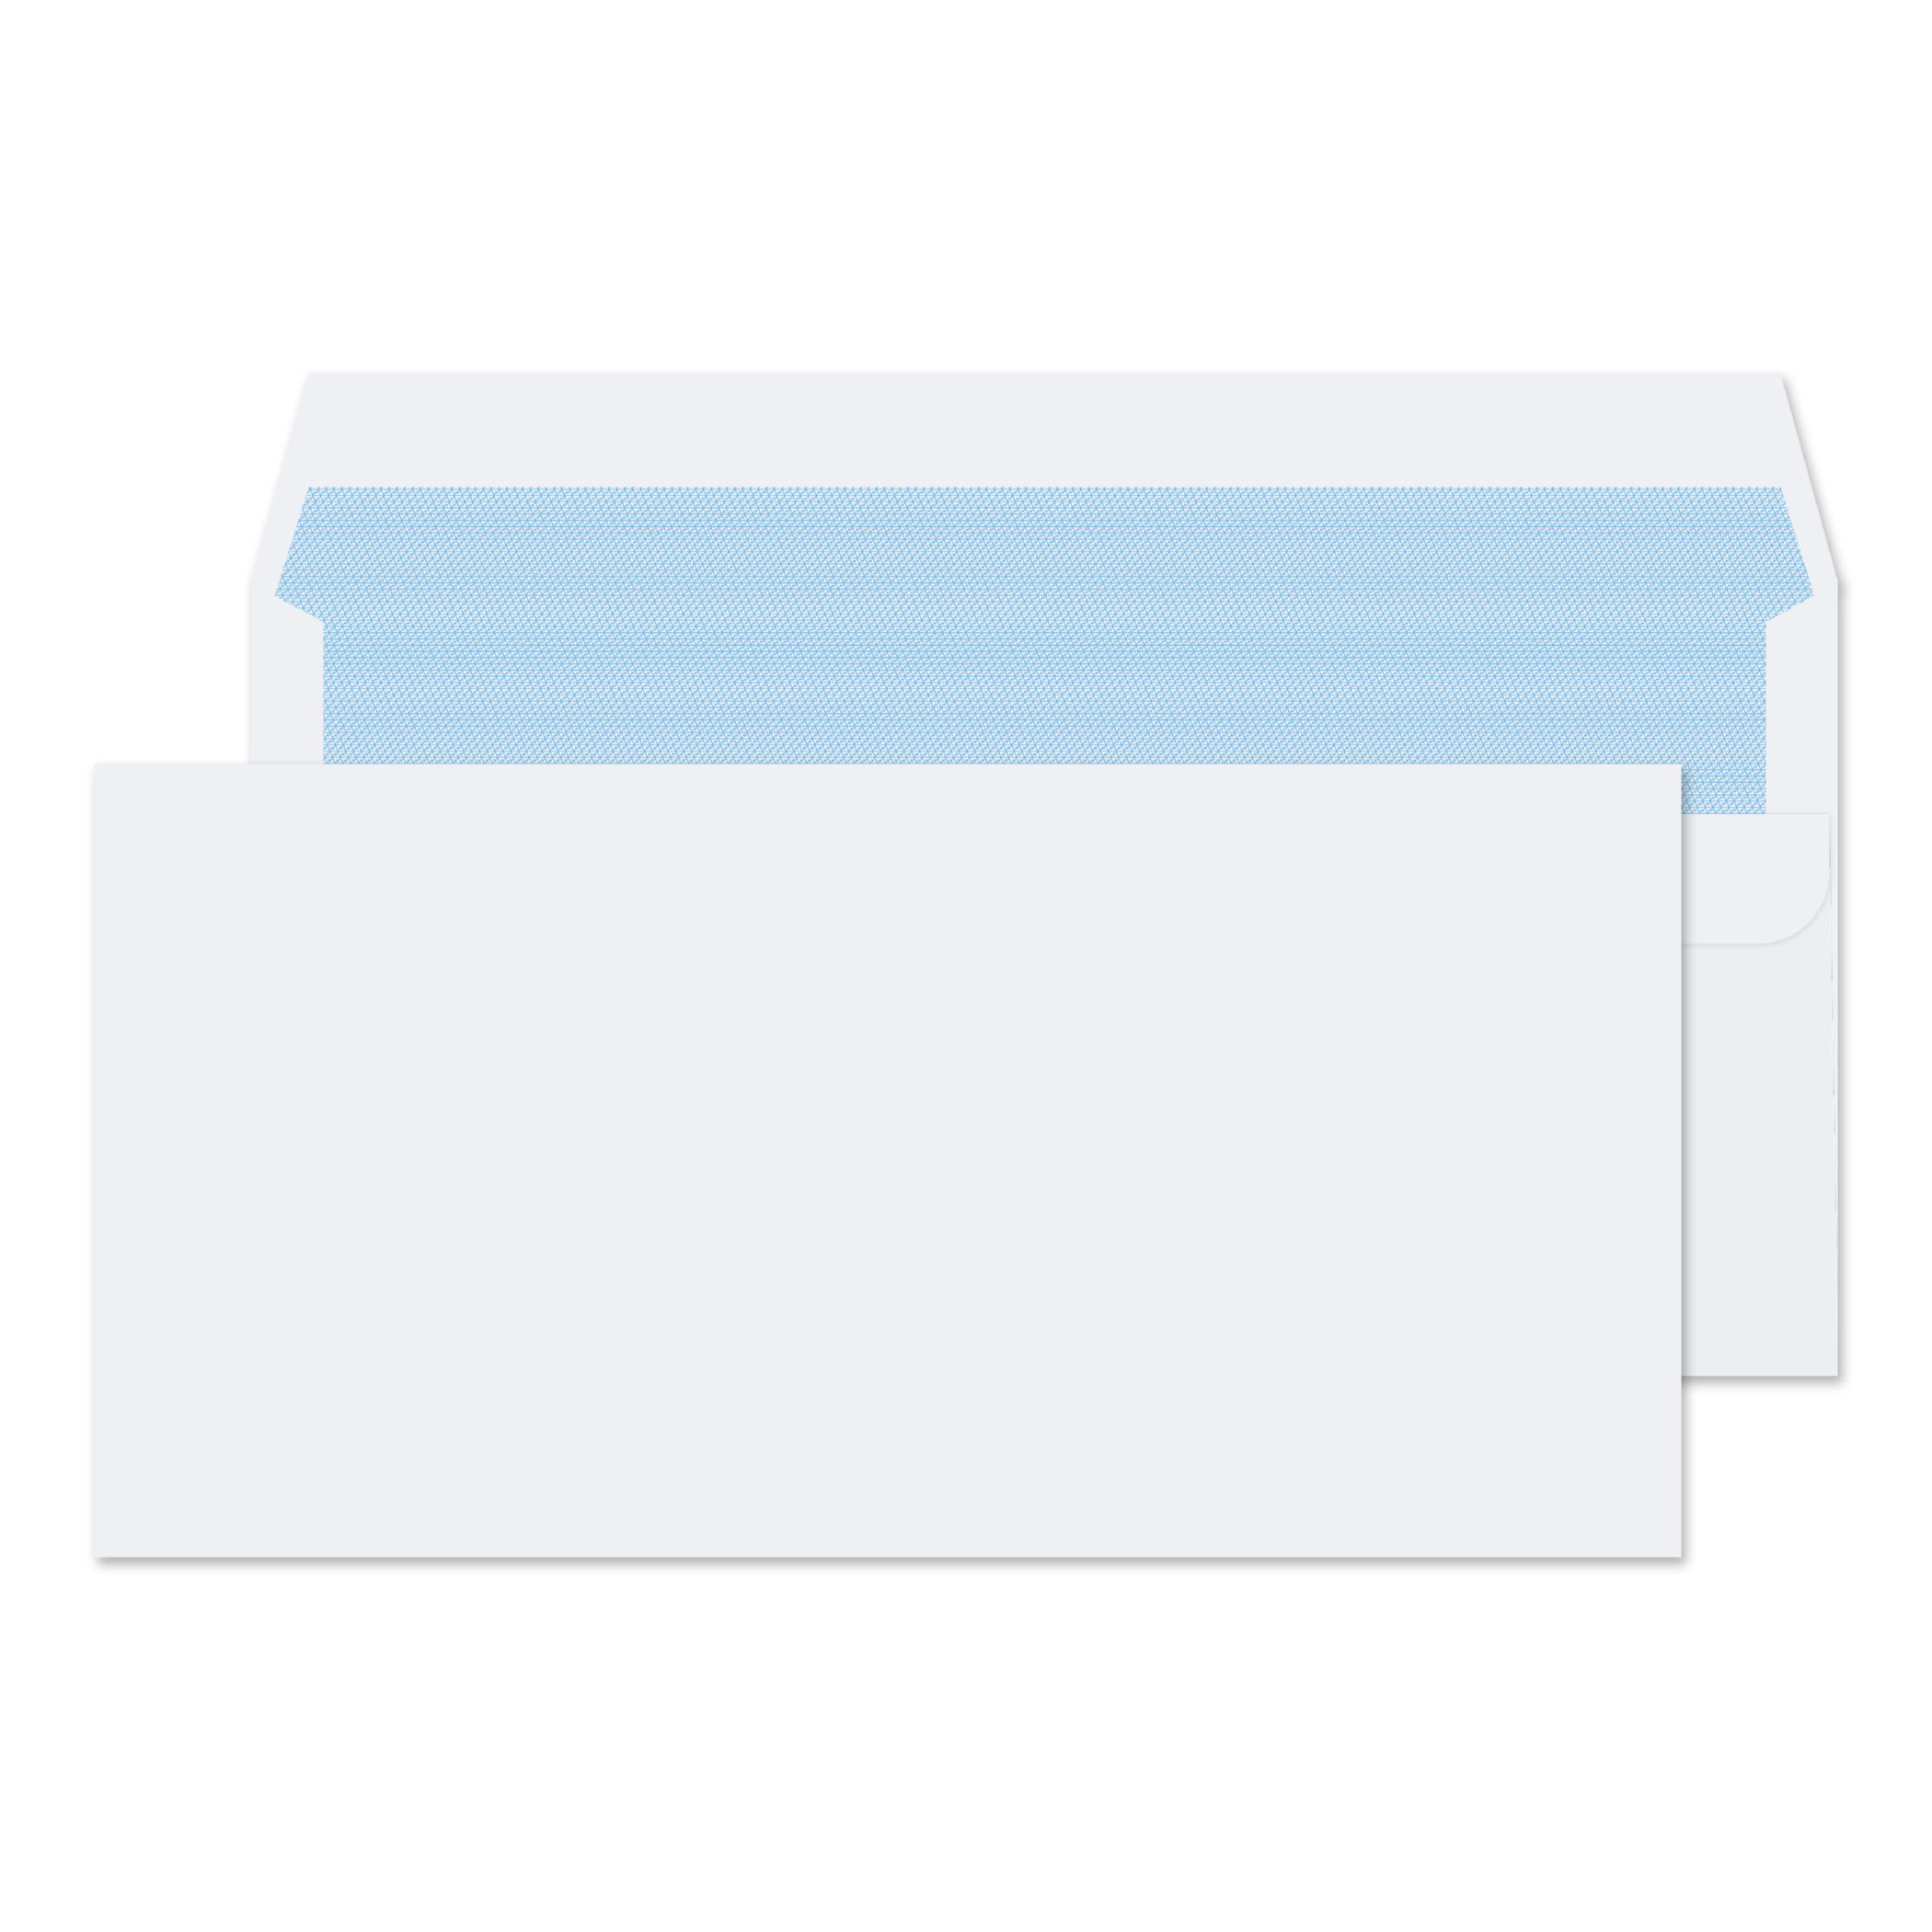 Everyday White SS Wallet DL 110X220 100gsm PK500